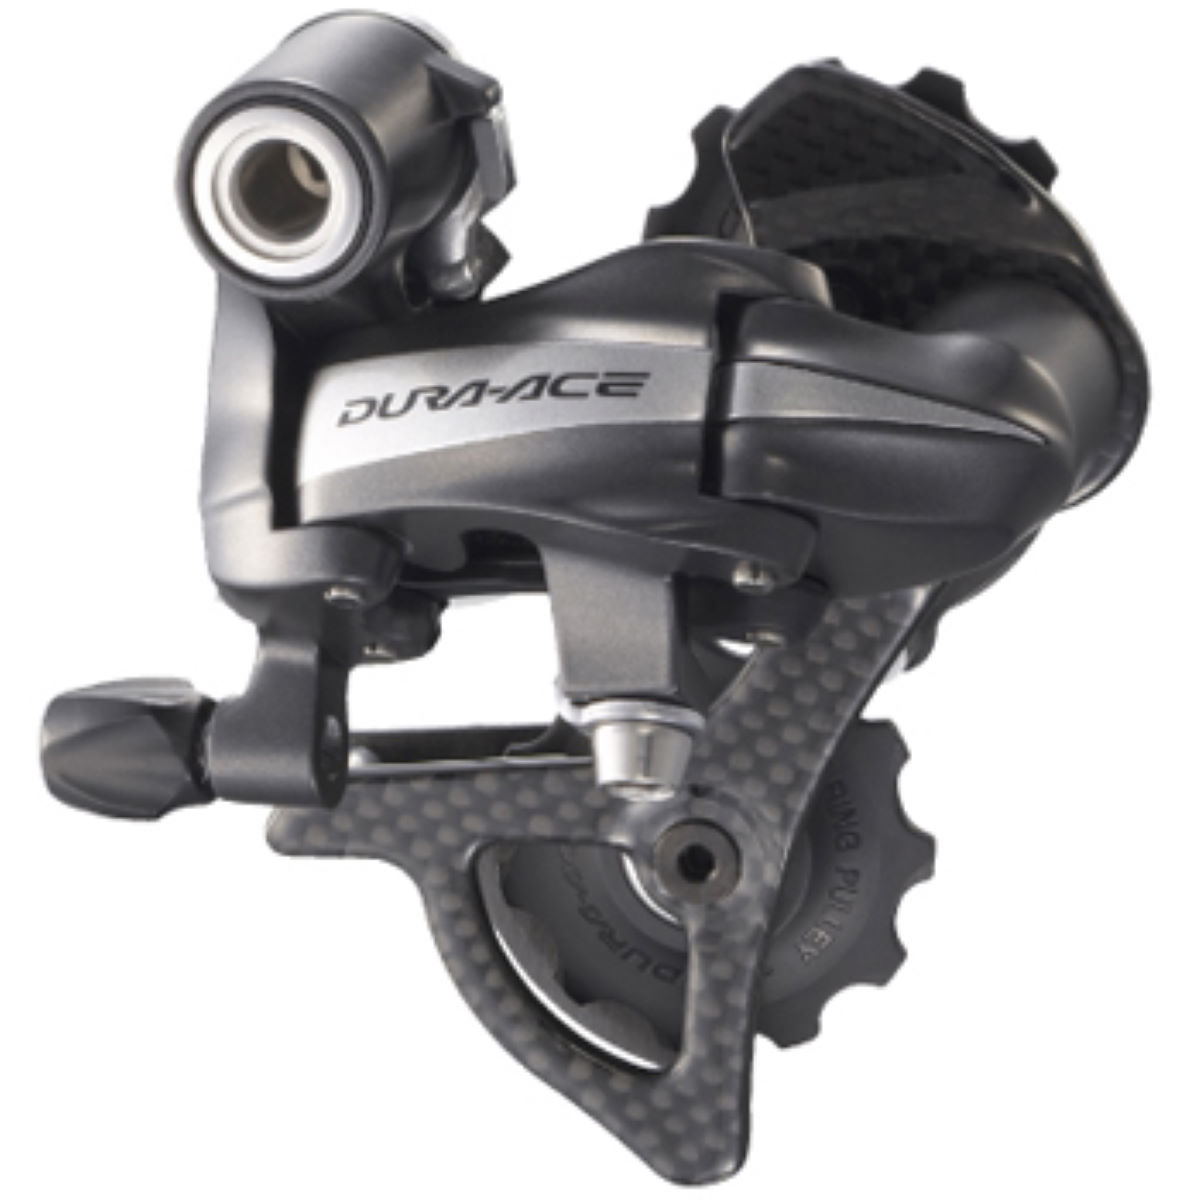 Shimano Dura Ace 7900 10 Speed Rear Derailleur